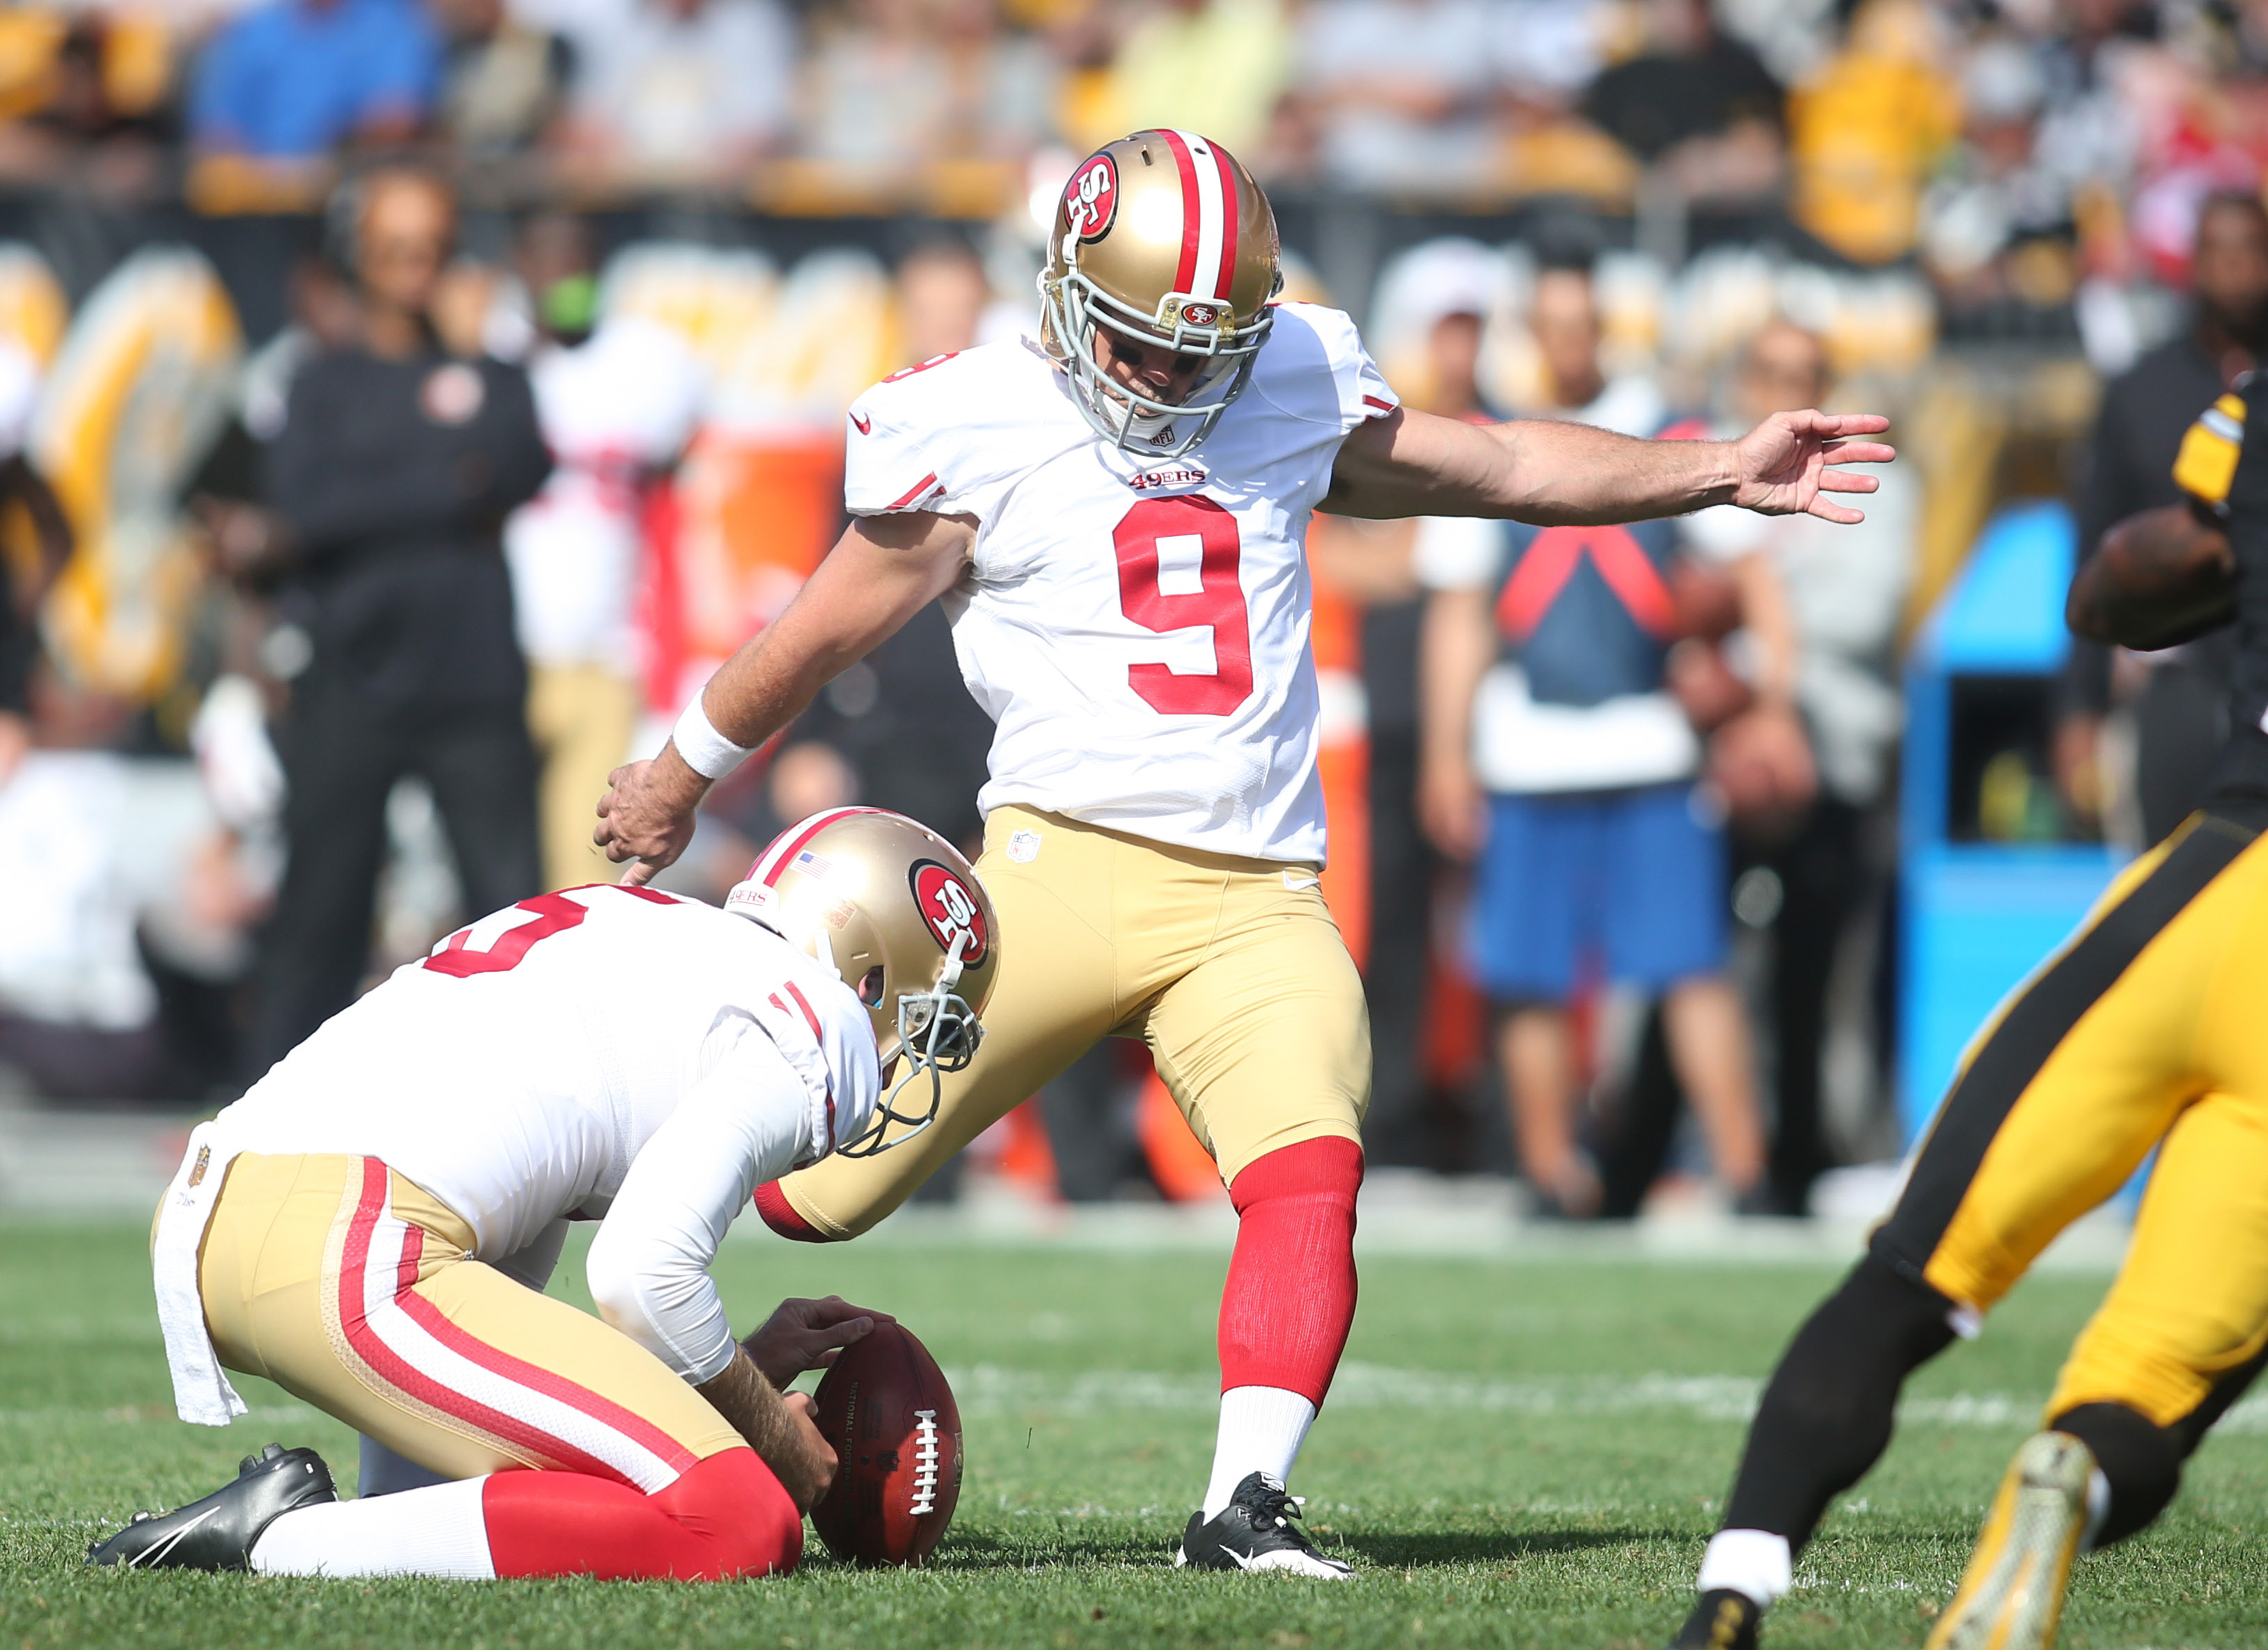 8817984-nfl-san-francisco-49ers-at-pittsburgh-steelers